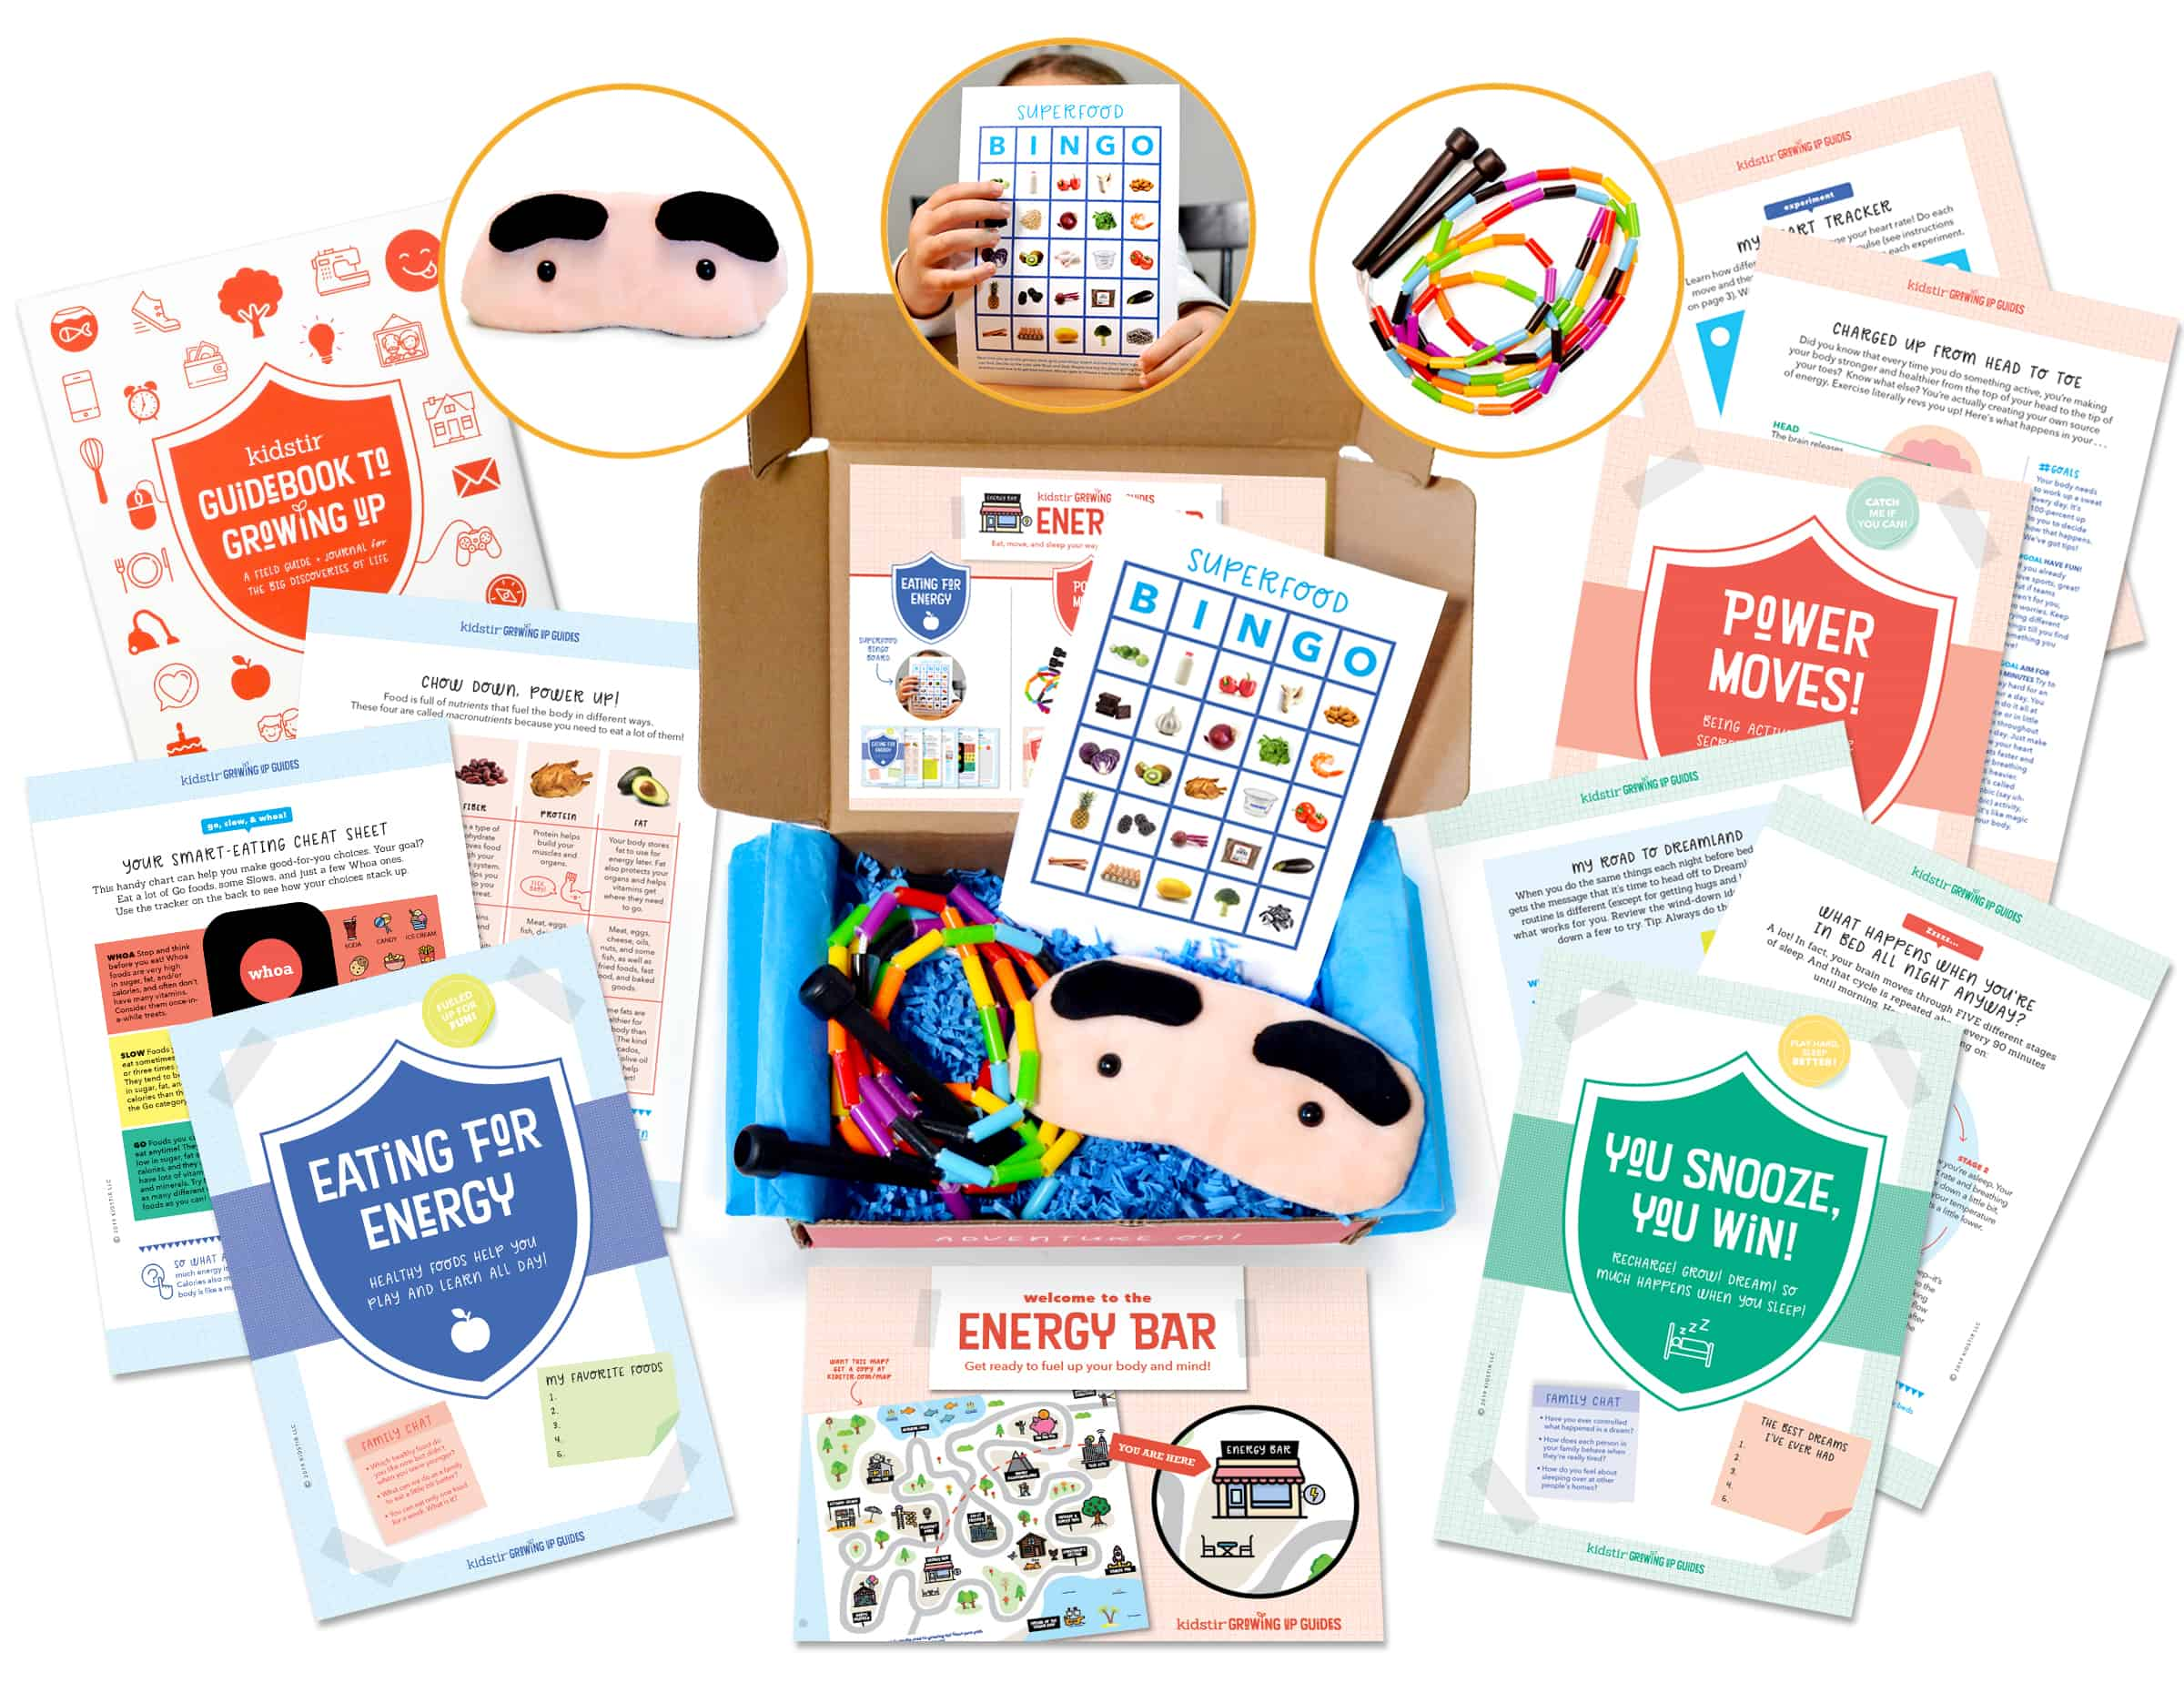 Kidstir Growing Up Guides Black Friday 75% Off Coupon – Under $10 Shipped!